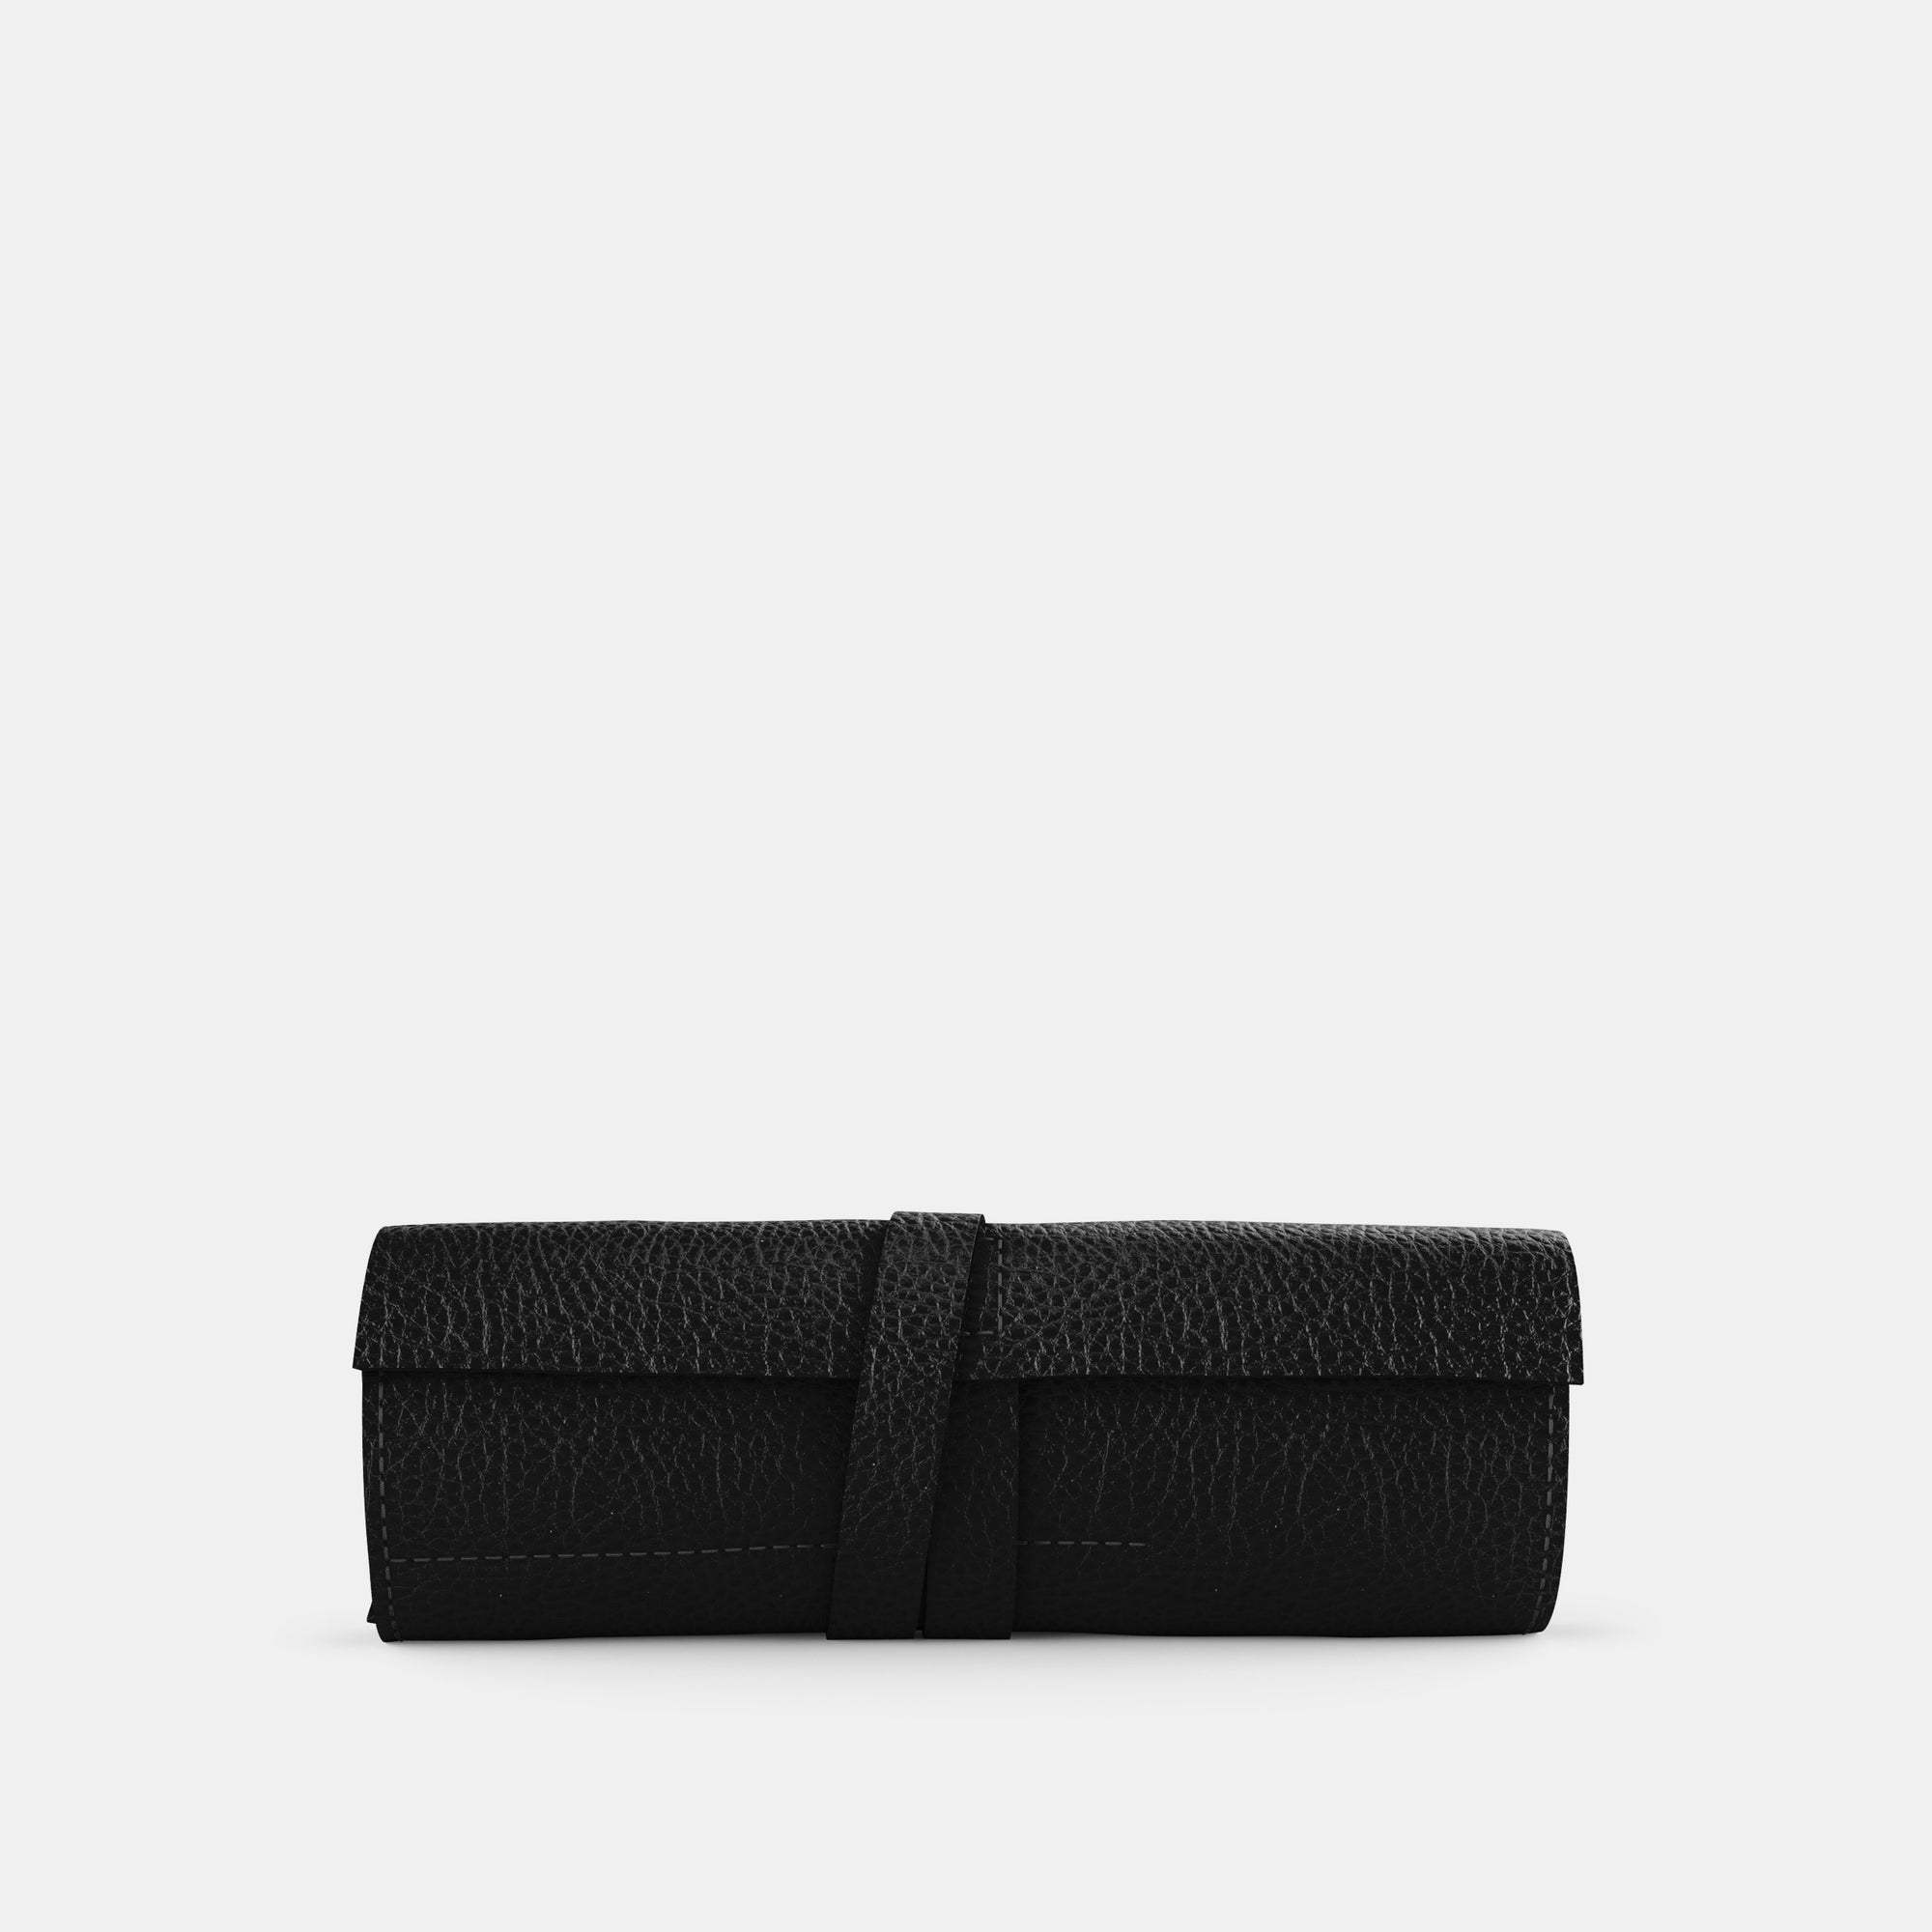 Leather Roll - Black and Black - RYAN London